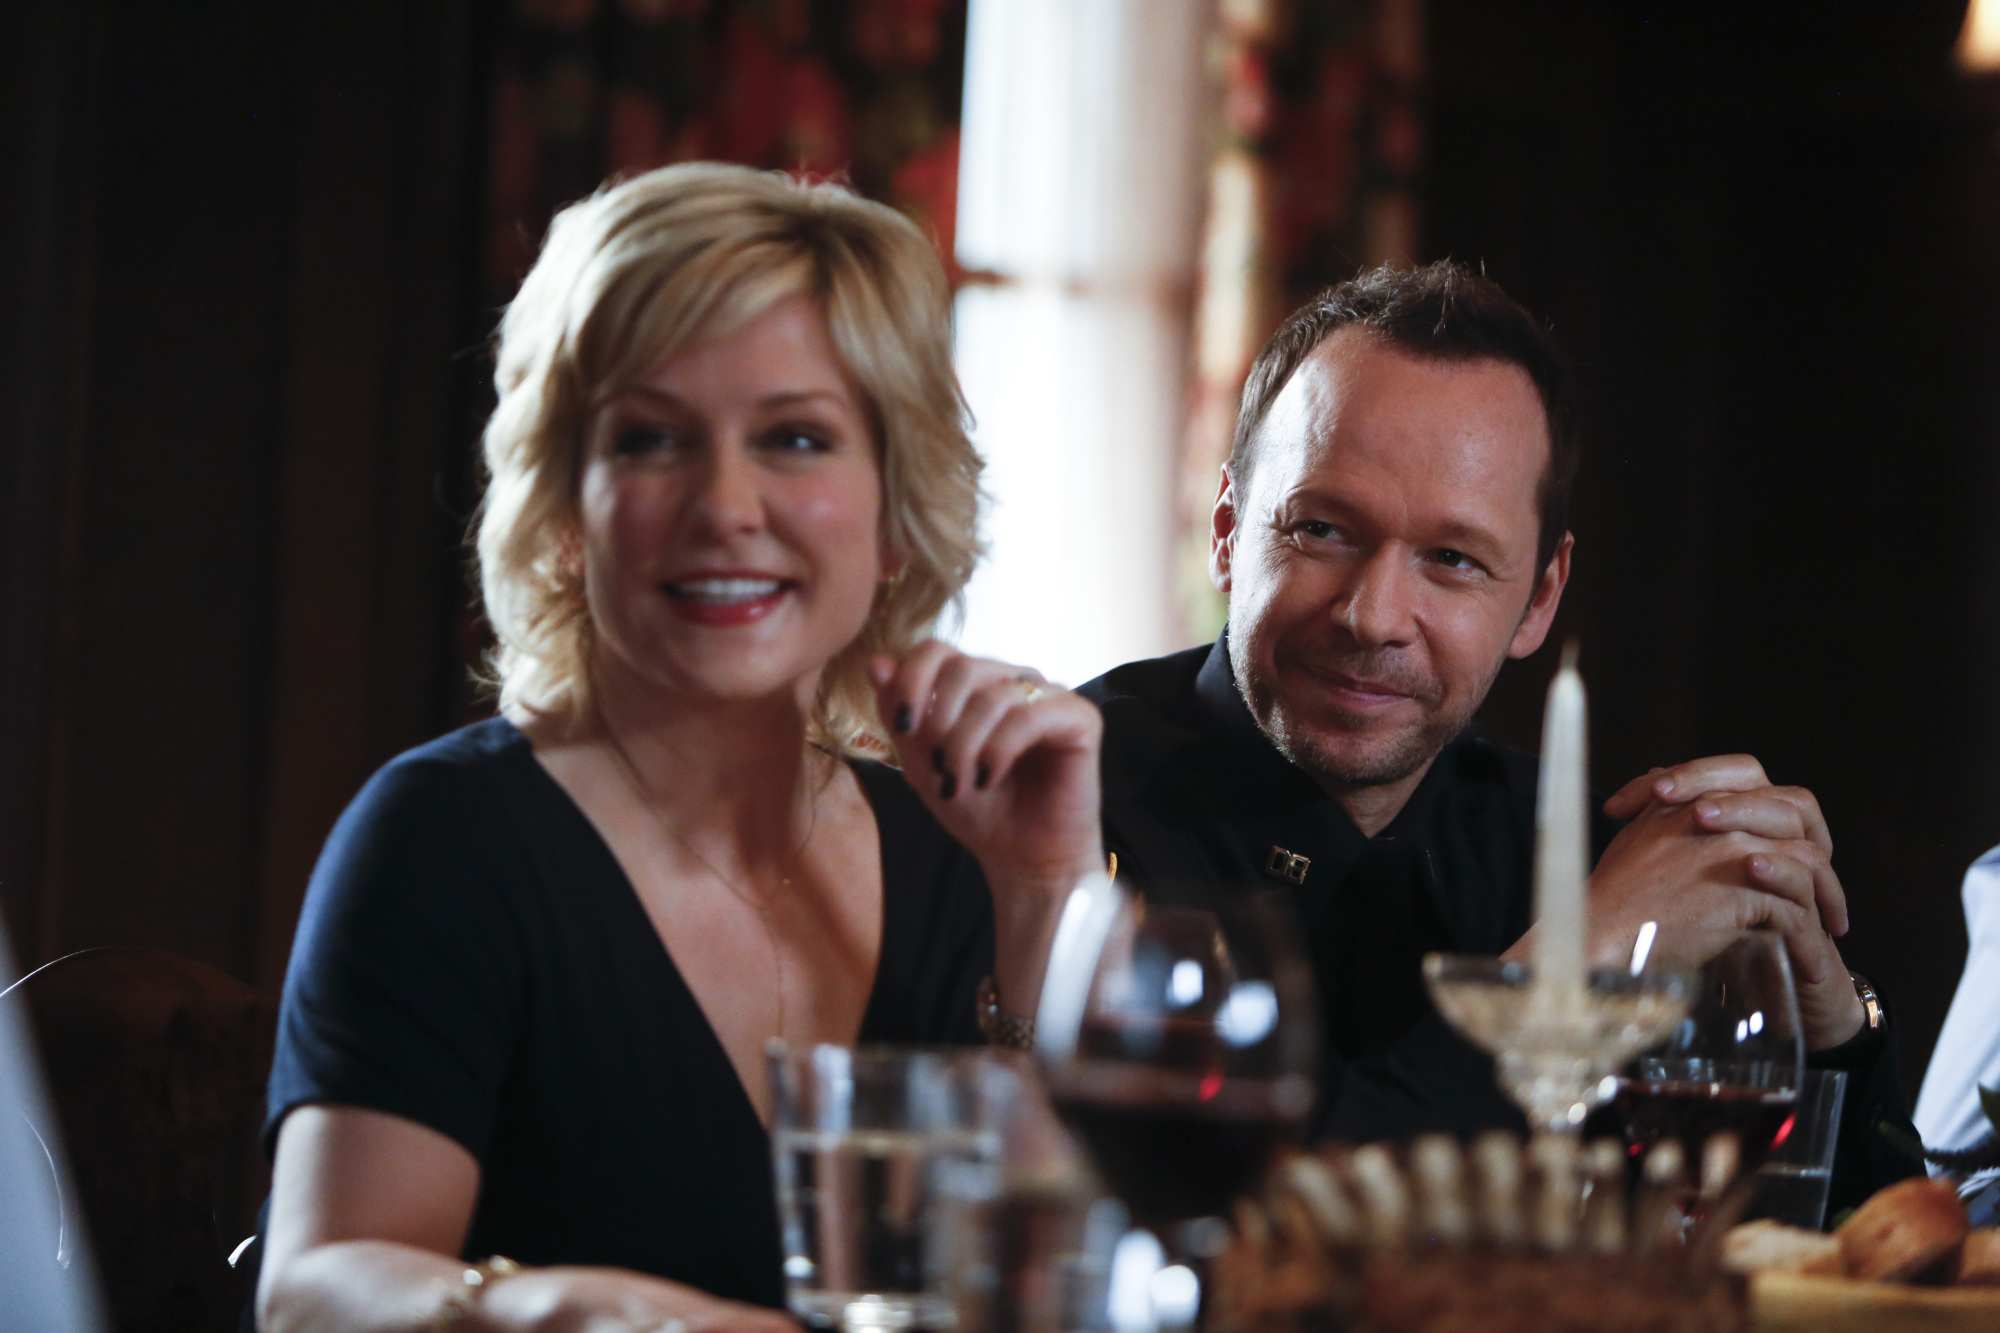 13. Before joining Blue Bloods, Amy Carlson was known for her roles as Alex Taylor in